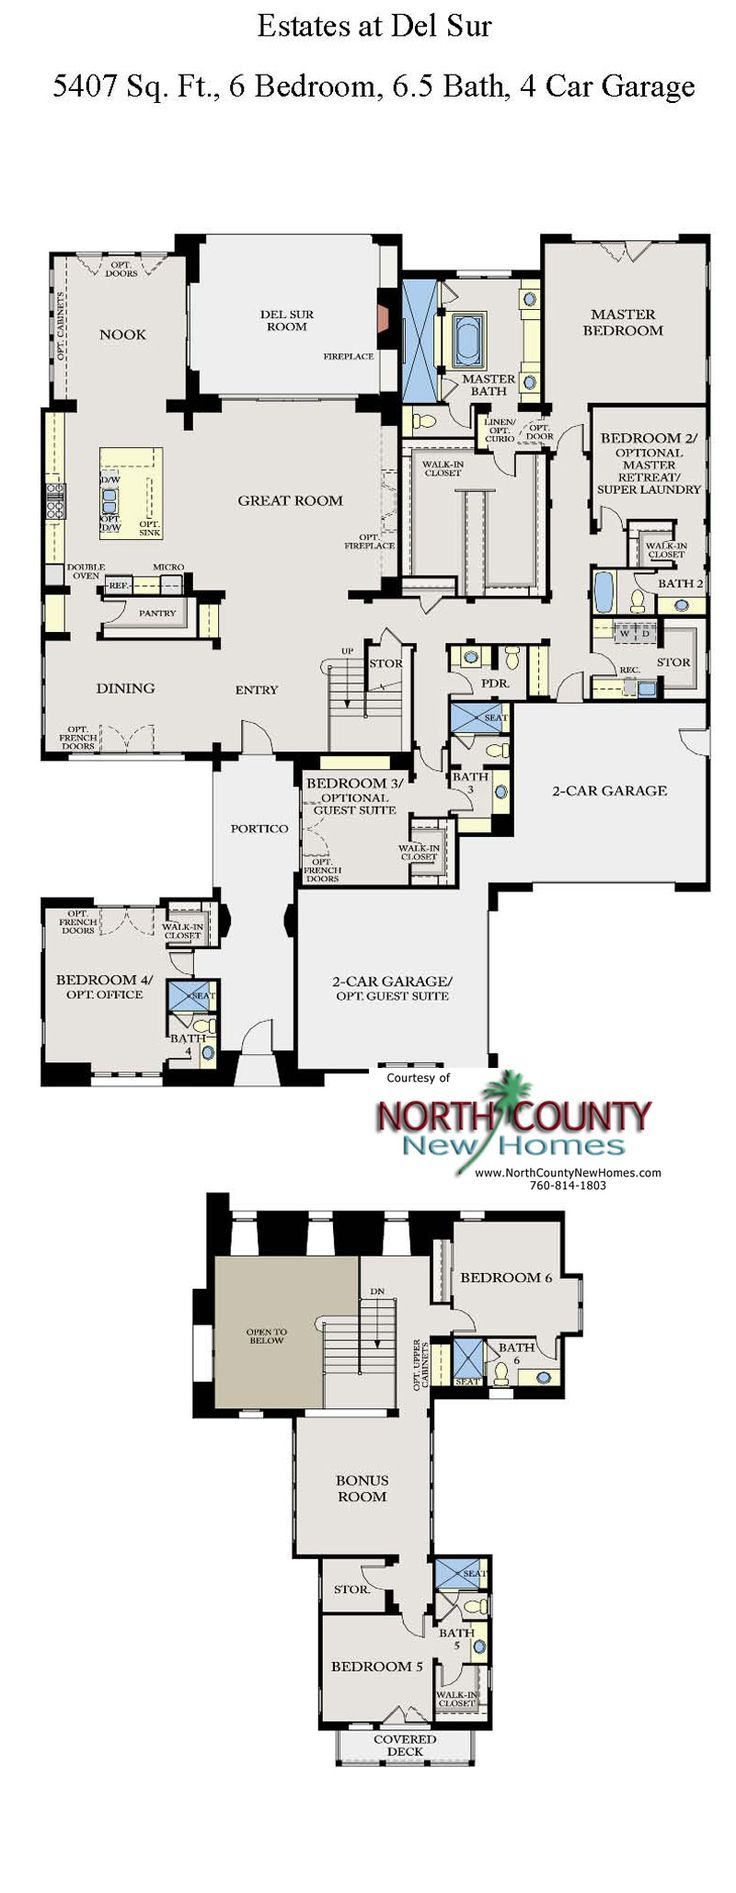 308 best new home floor plans in north county san diego images on the estates at del sur new homes floor plan new homes in san diego single story homes